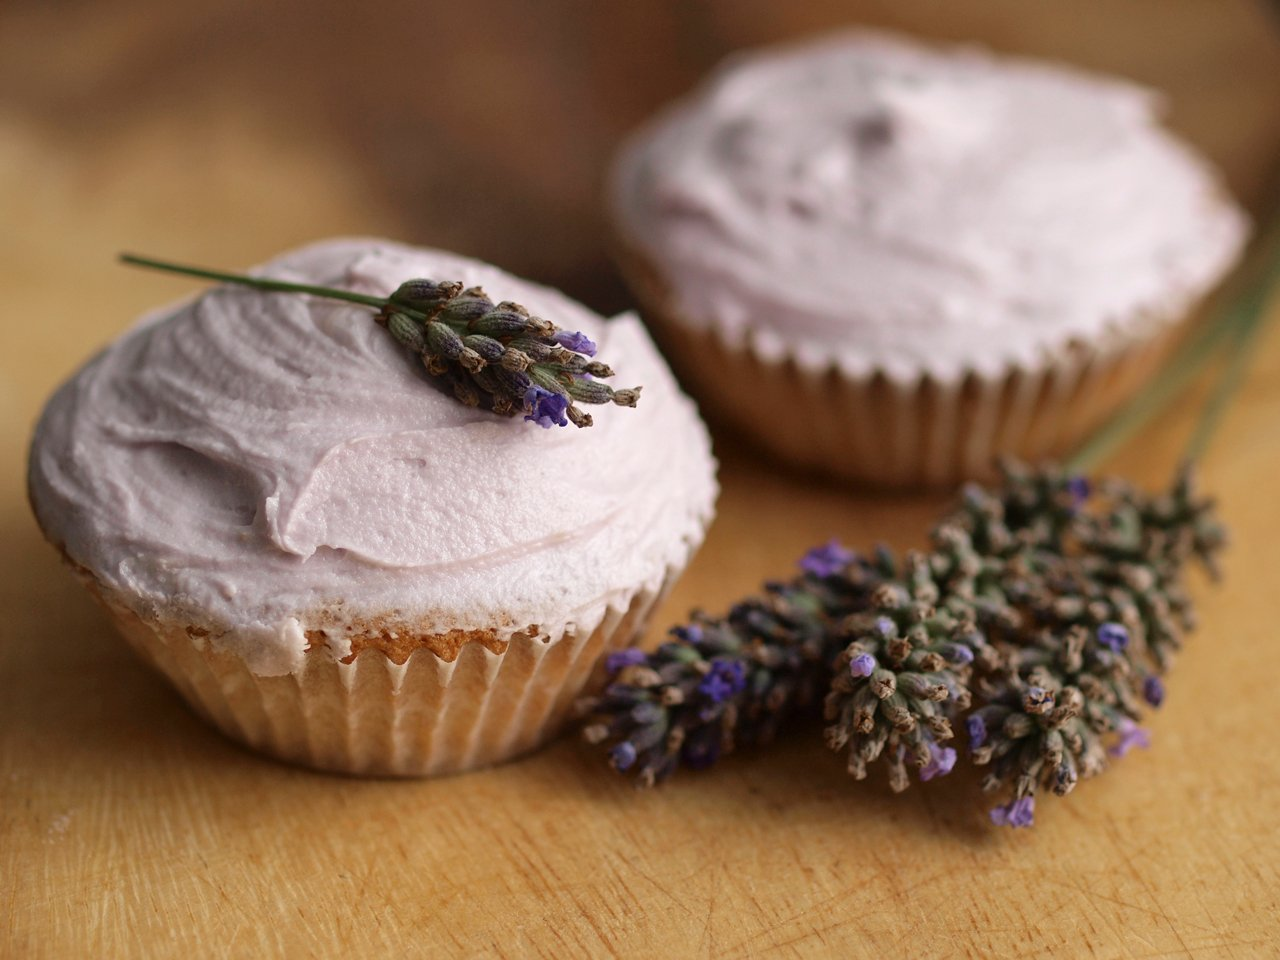 Lavender infused cupcakes | Photo By hozinja/Flickr